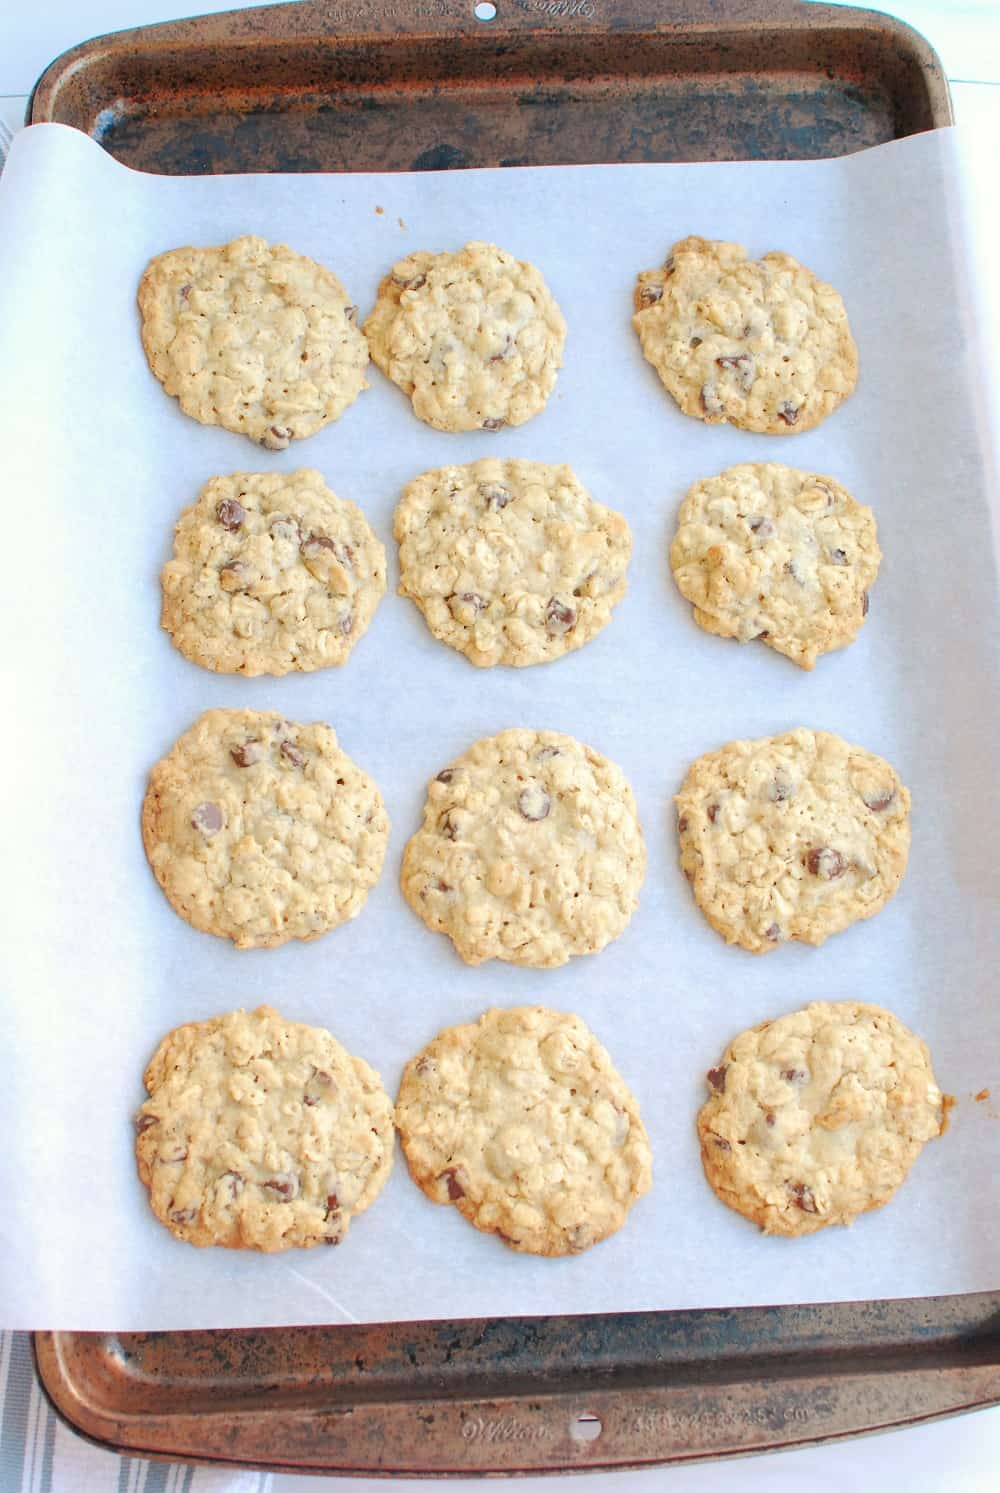 Cookies on a baking sheet lined with parchment paper.